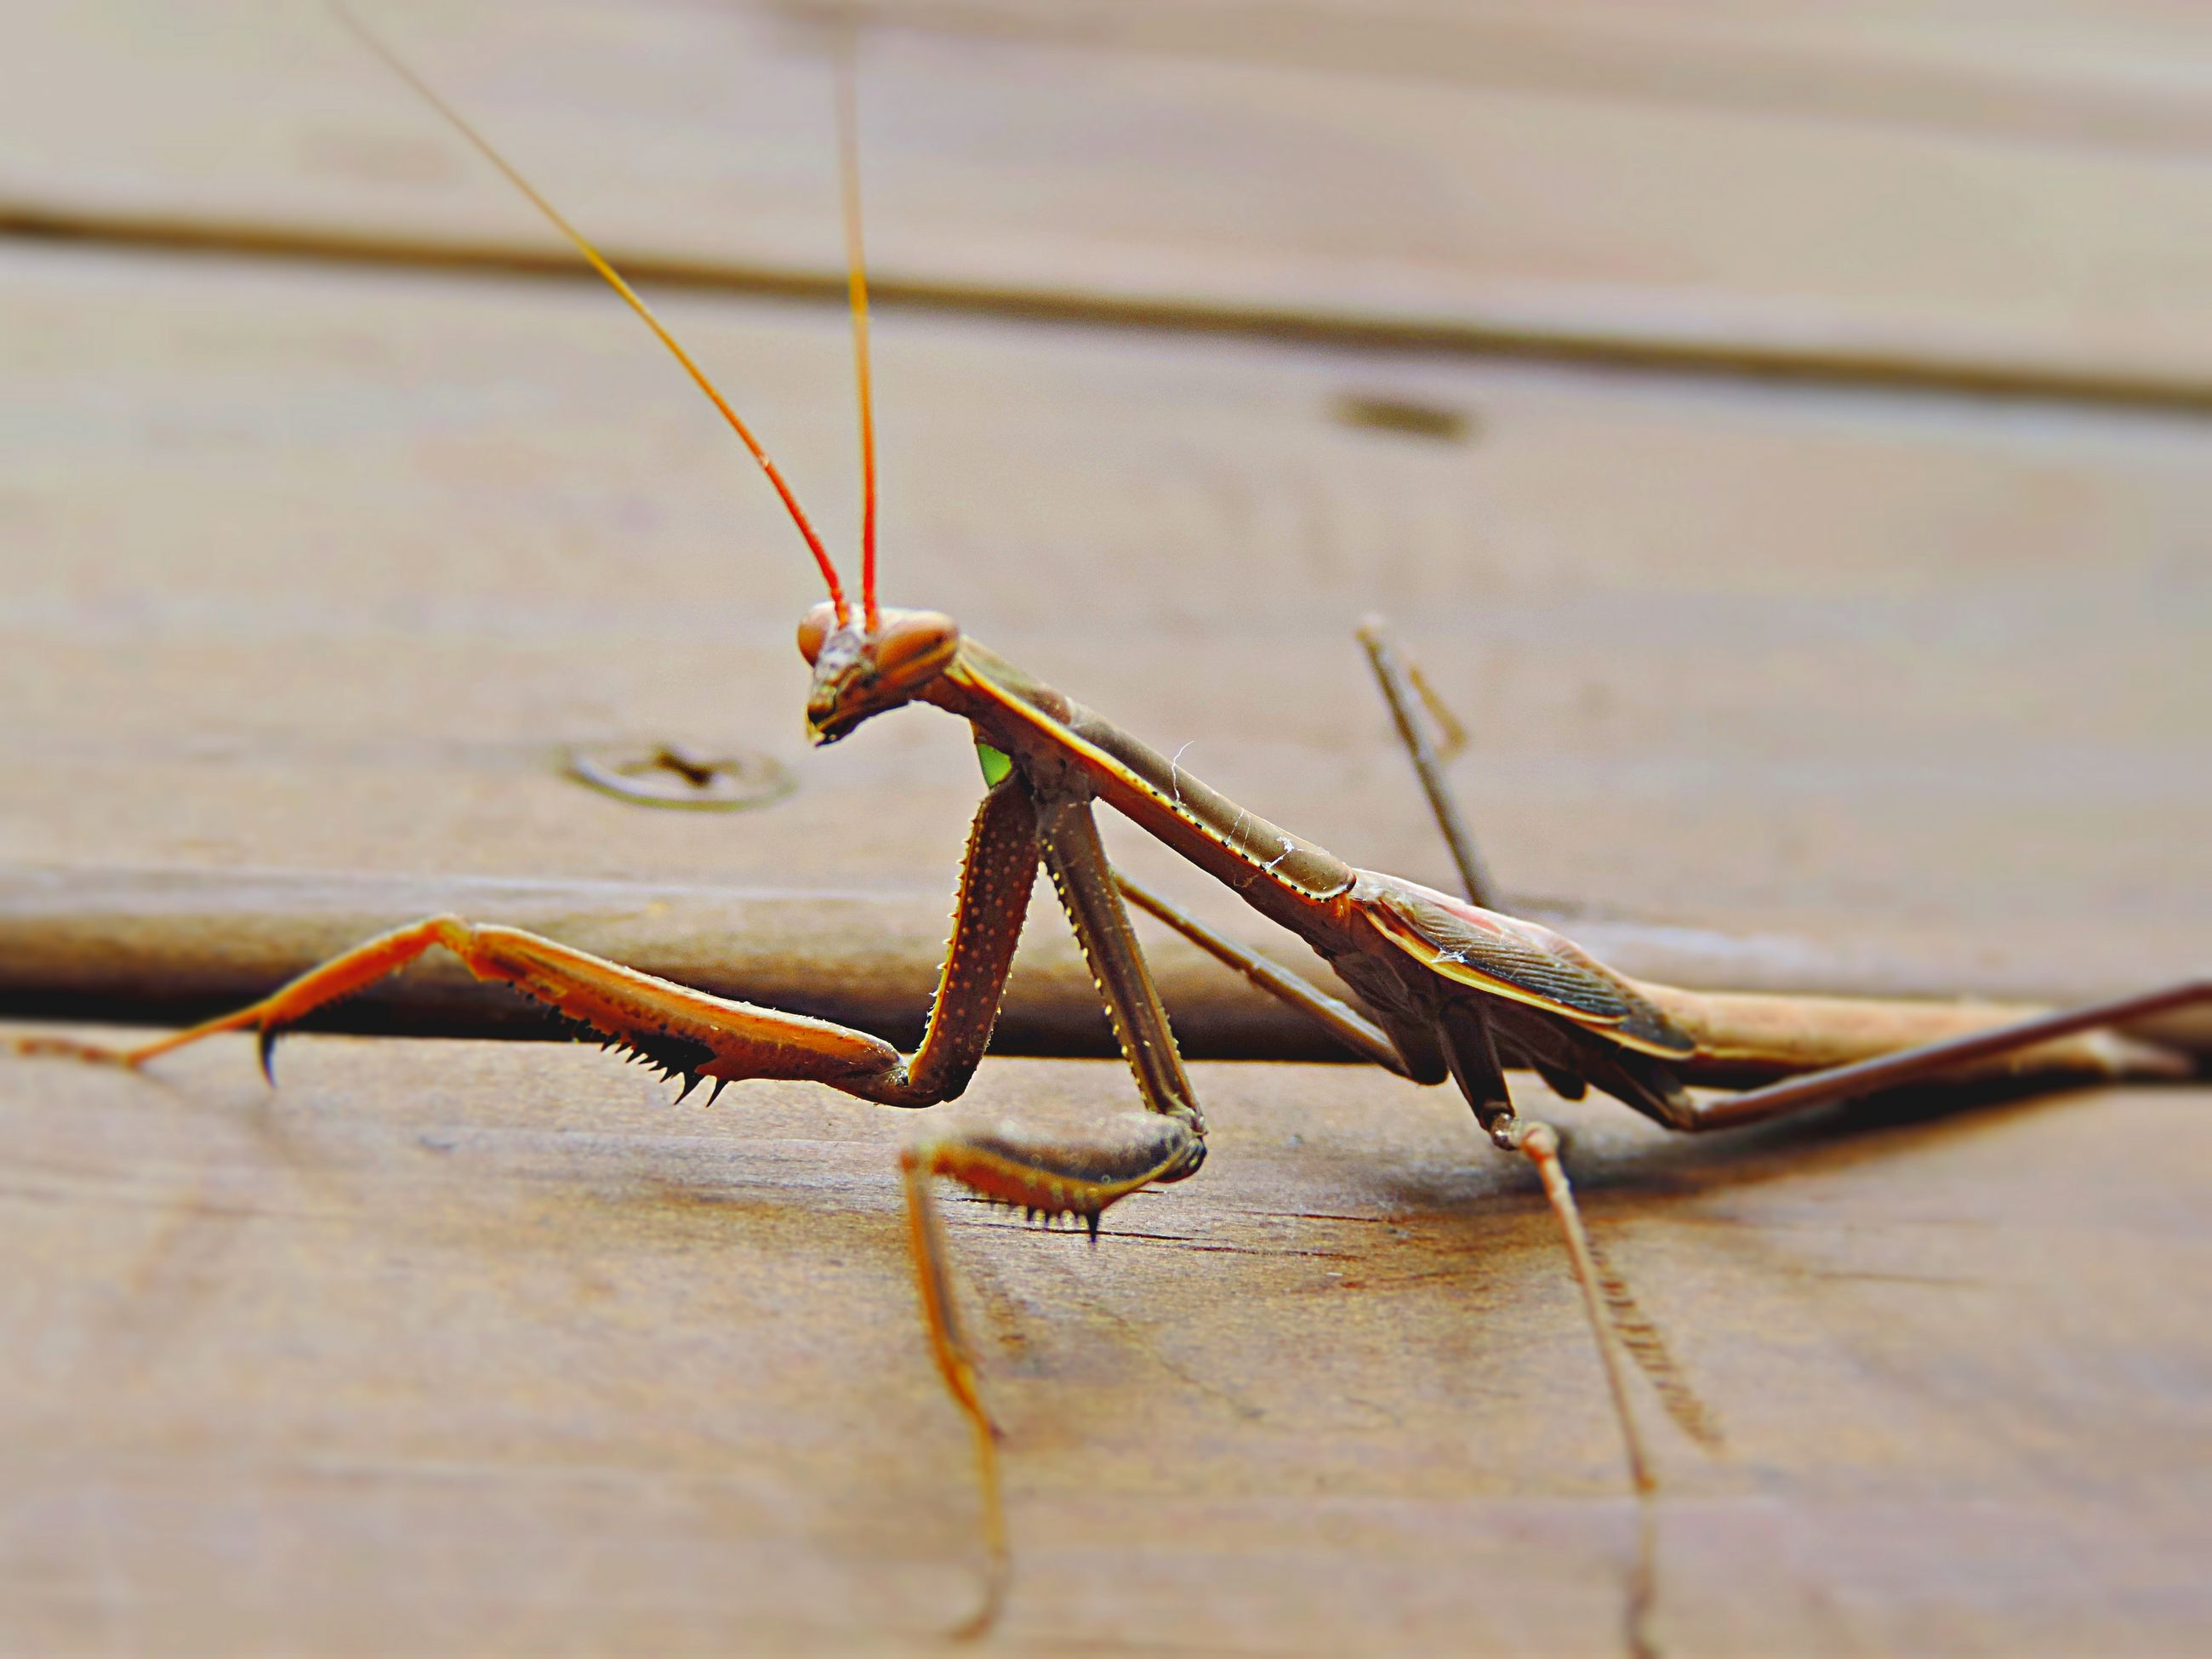 one animal, animals in the wild, animal themes, insect, wildlife, selective focus, grasshopper, praying mantis, close-up, full length, animal antenna, zoology, arthropod, focus on foreground, no people